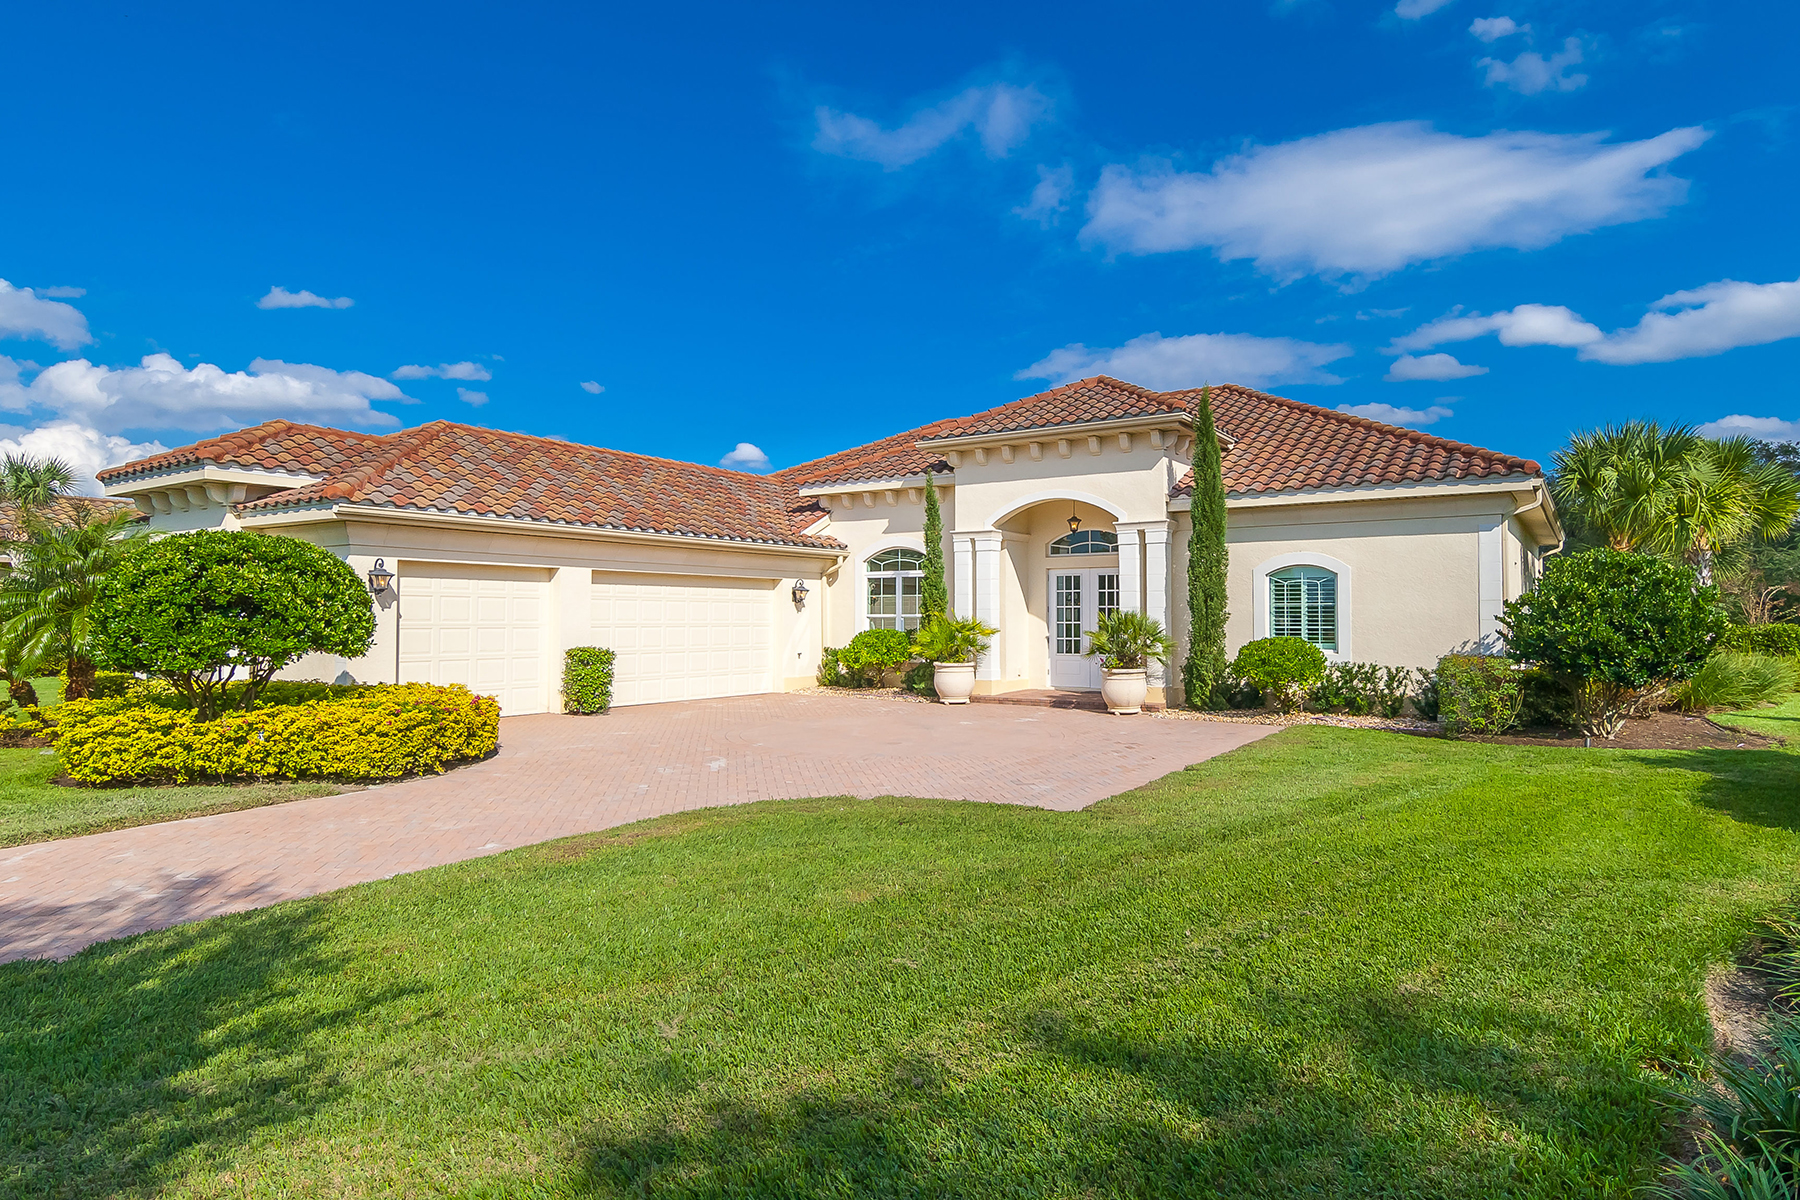 Single Family Home for Sale at FOUNDERS CLUB 3224 Founders Club Dr Sarasota, Florida, 34240 United States